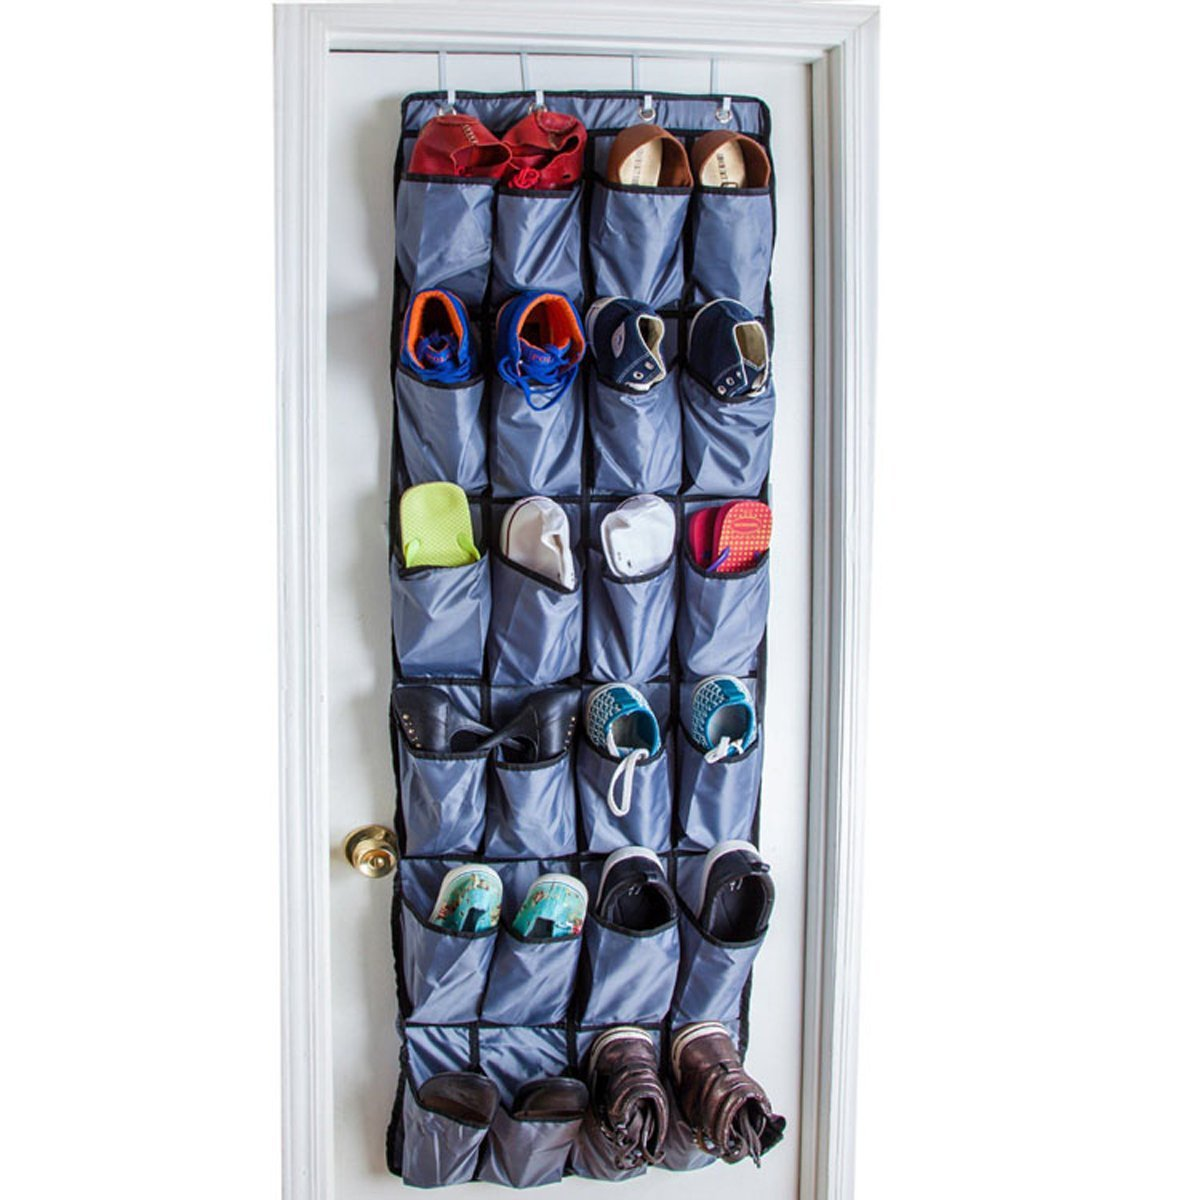 Buy Tresbro 24 Pocket Over The Door Hanging Shoe Organizer Black 1